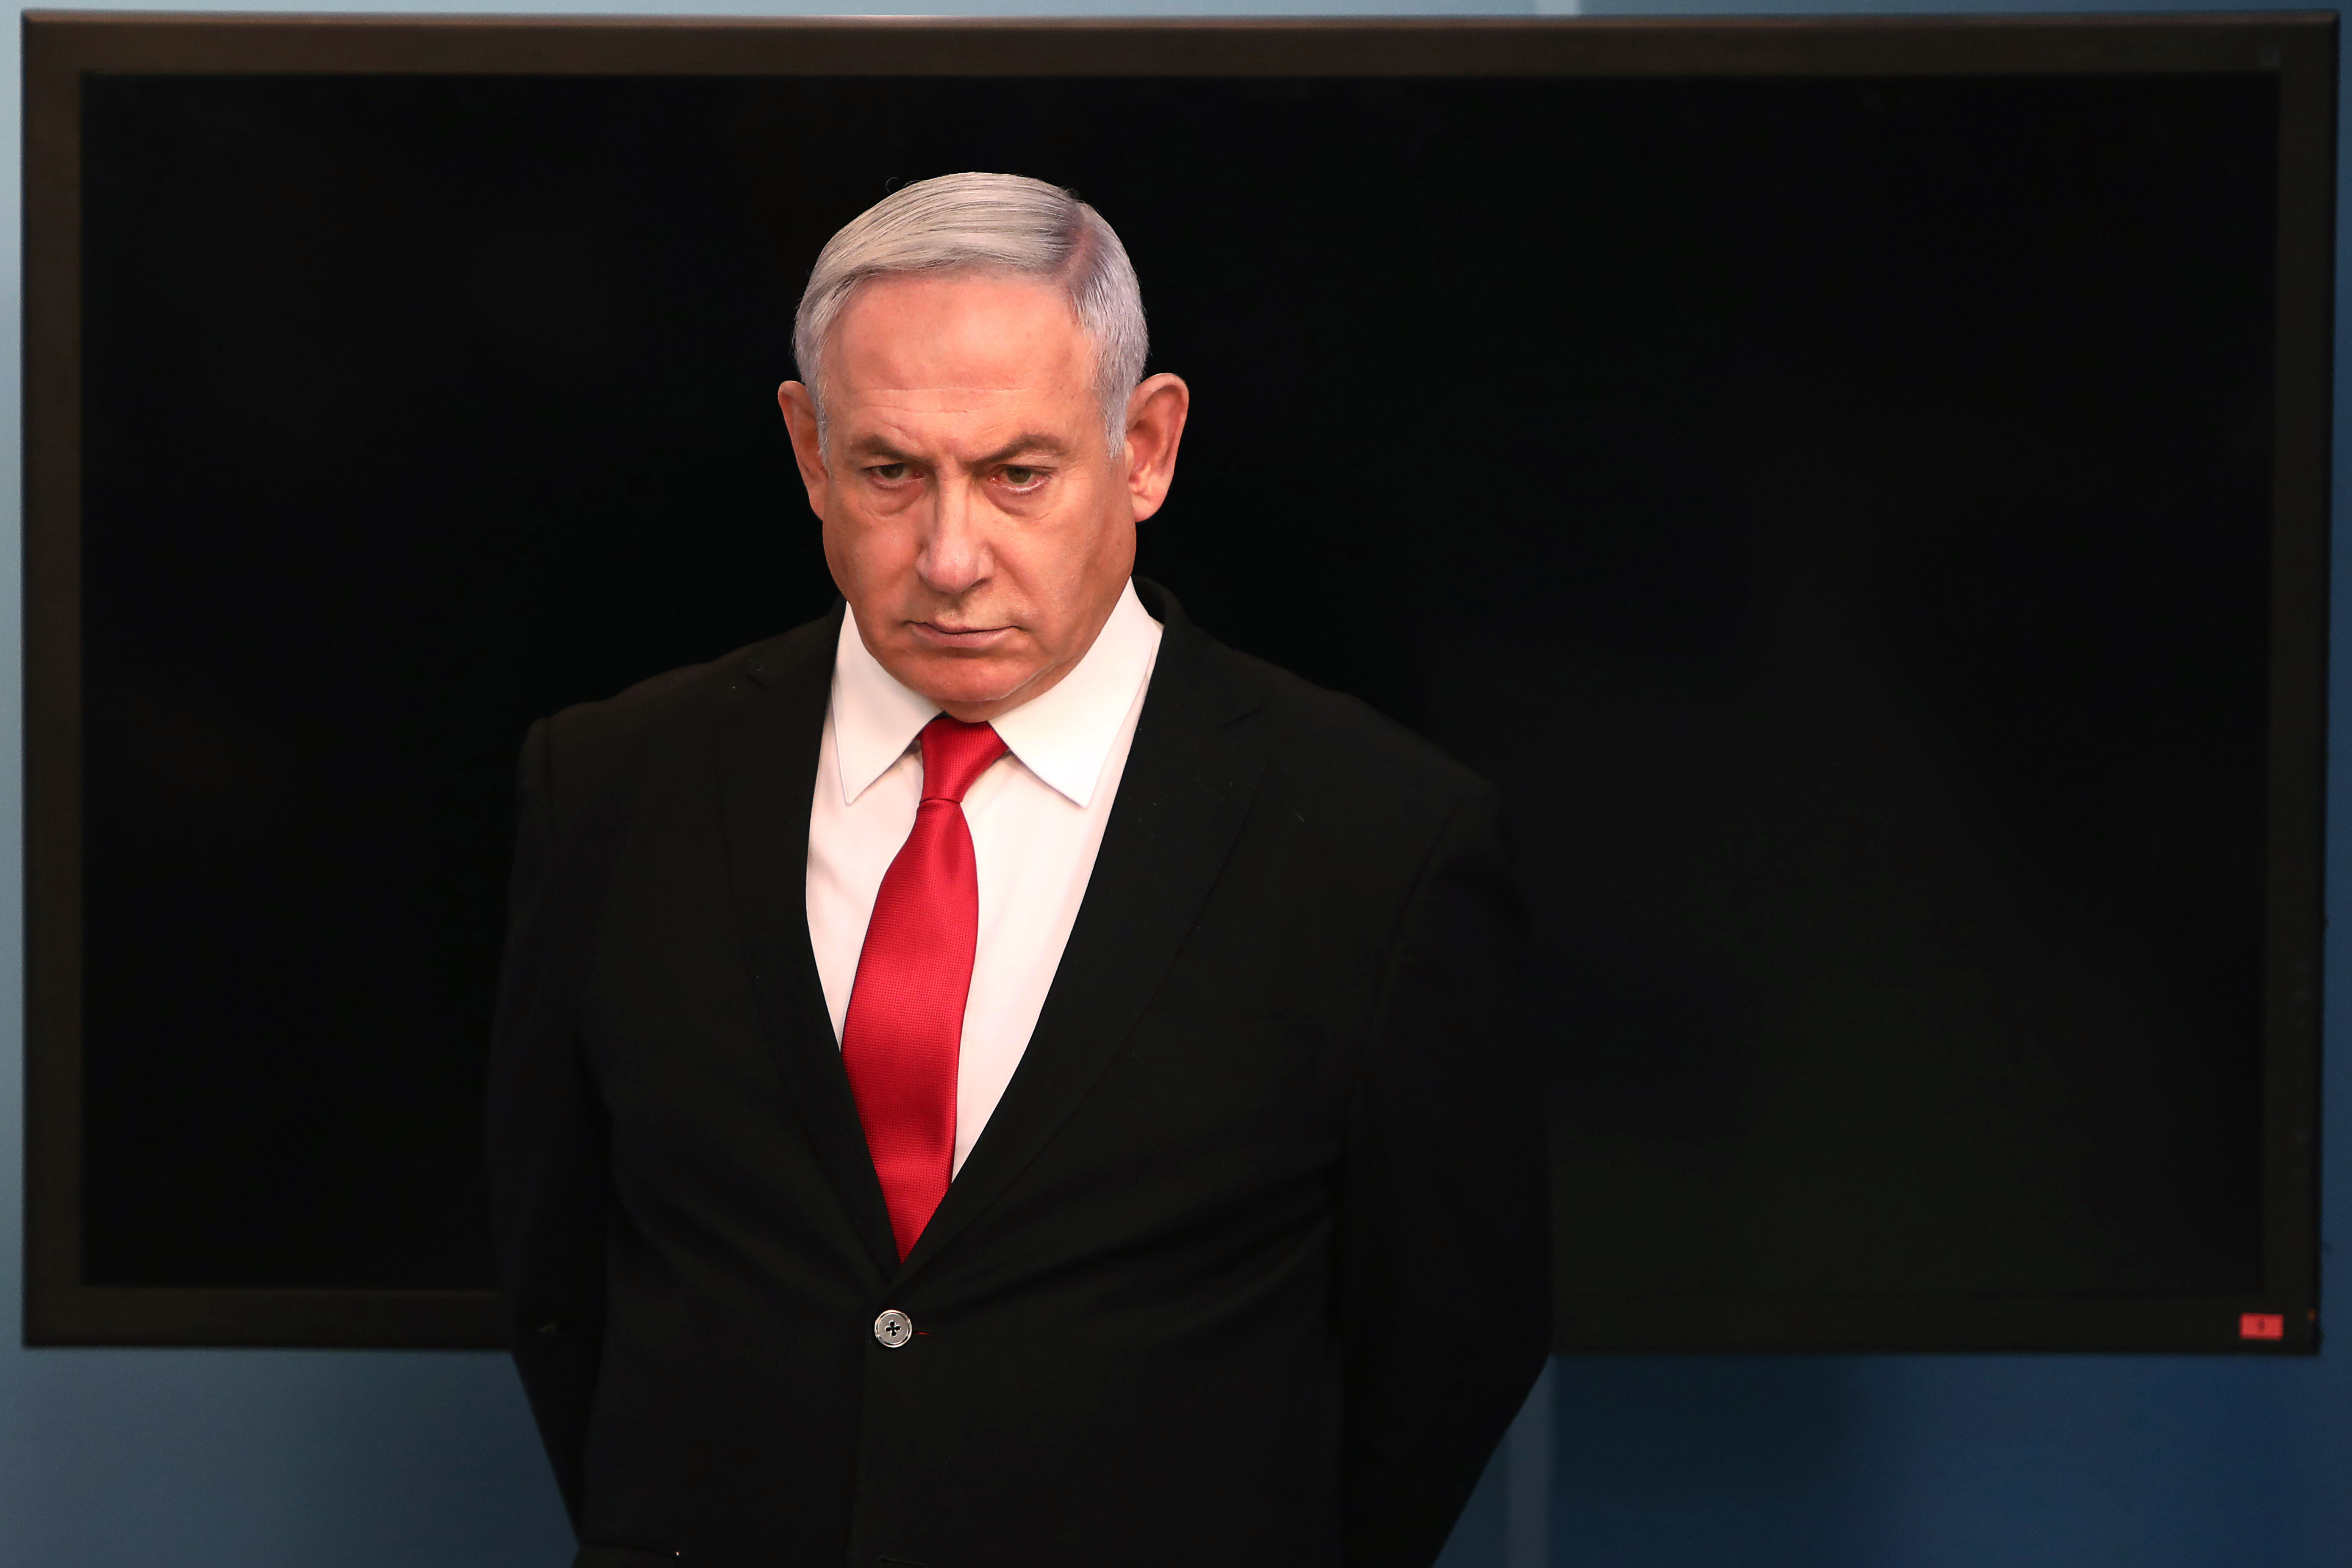 Israeli leader offers to step down next year in unity deal